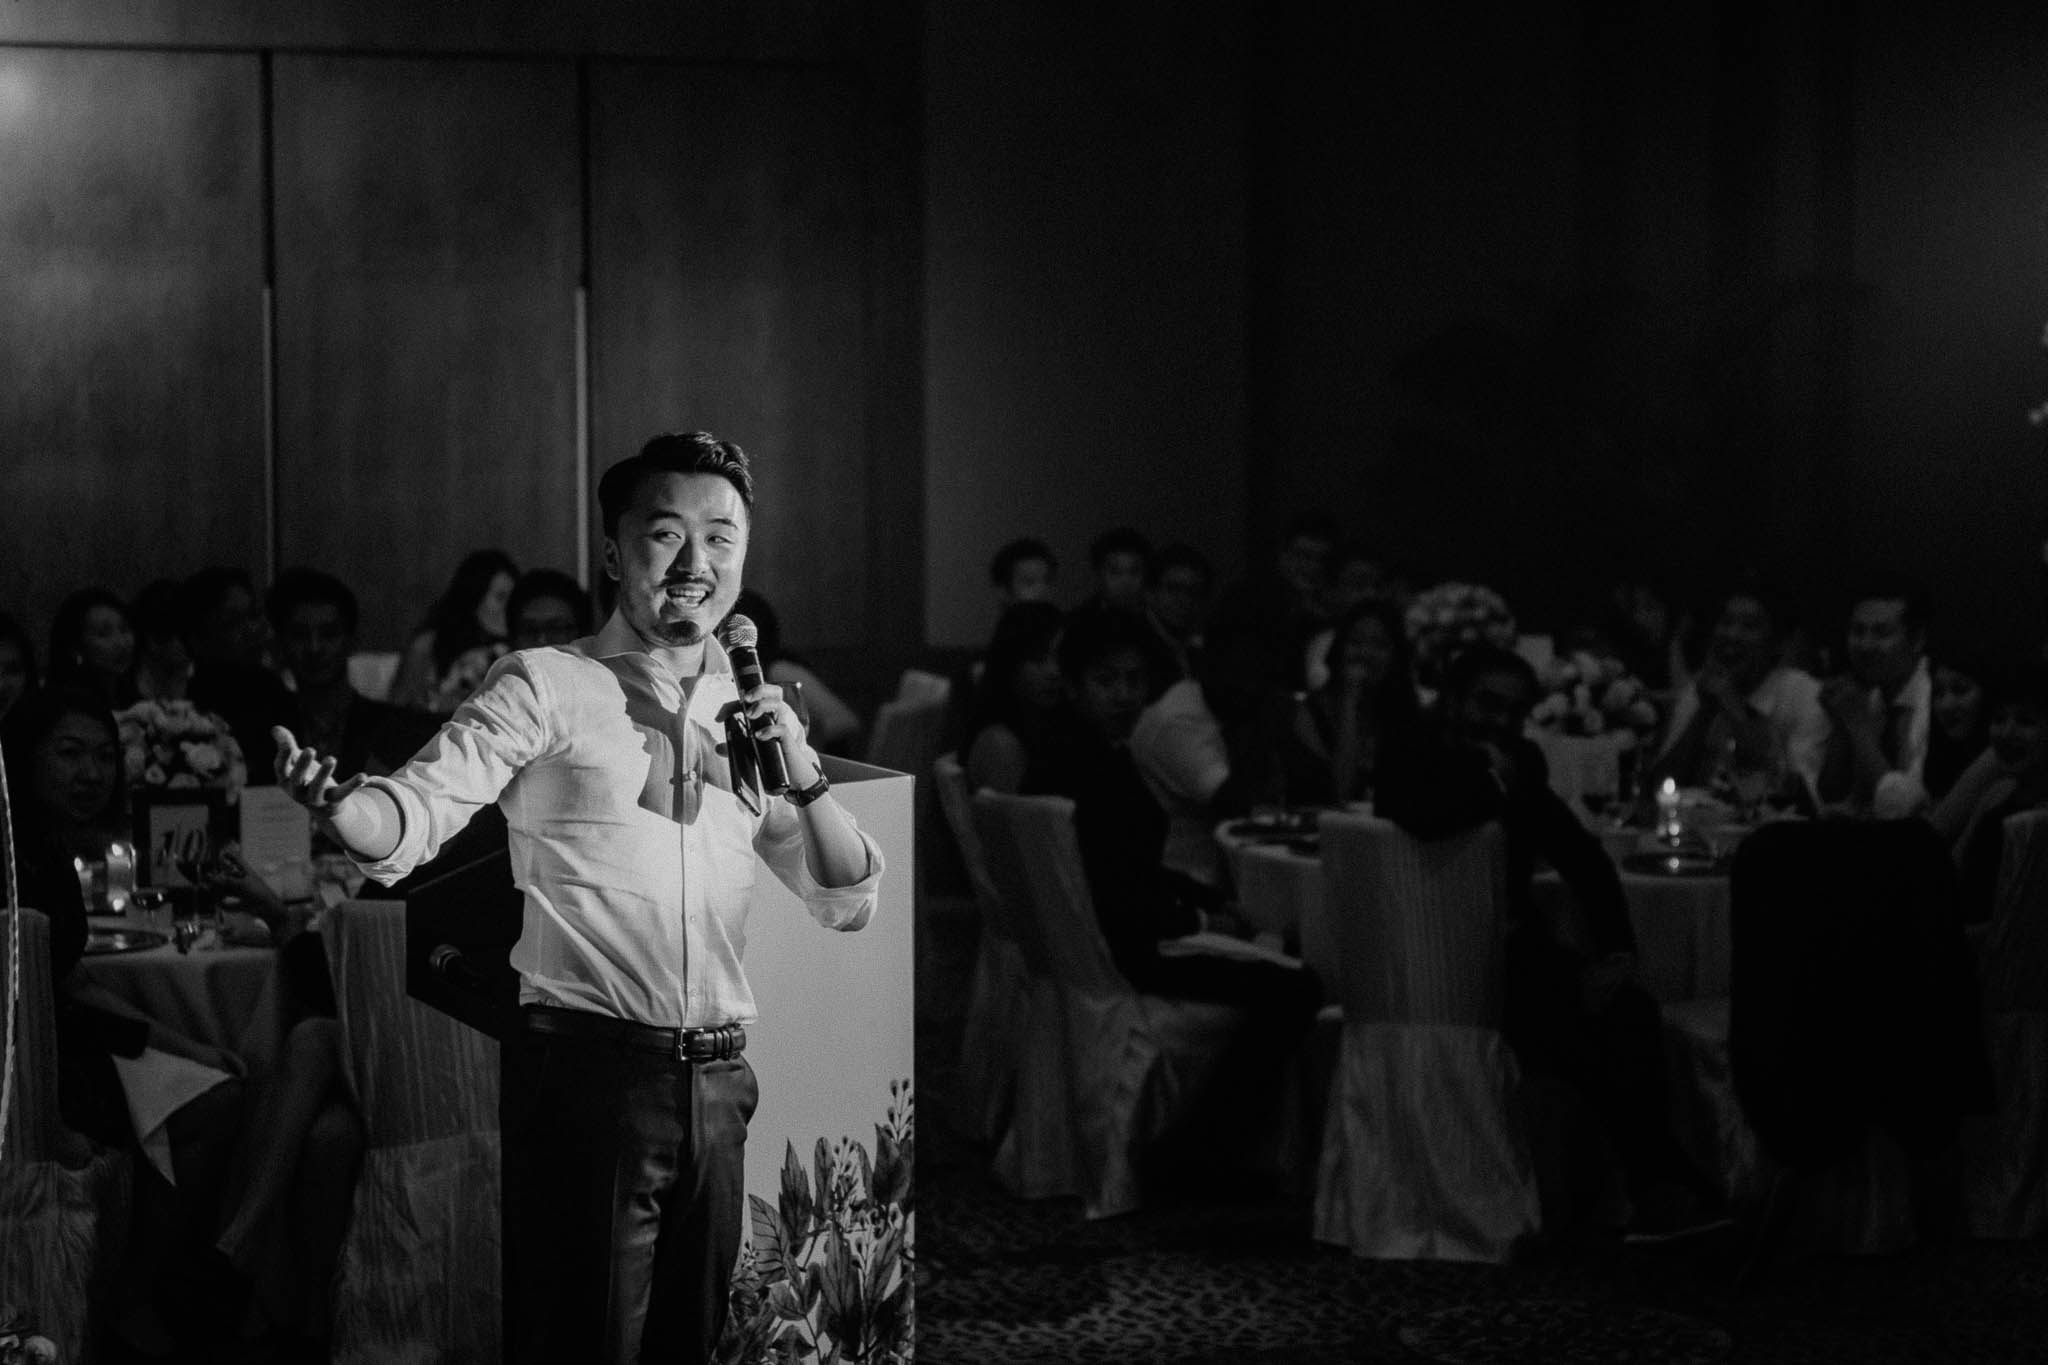 singapore-wedding-photographer-pre-wedding-ashley-sean-067.jpg